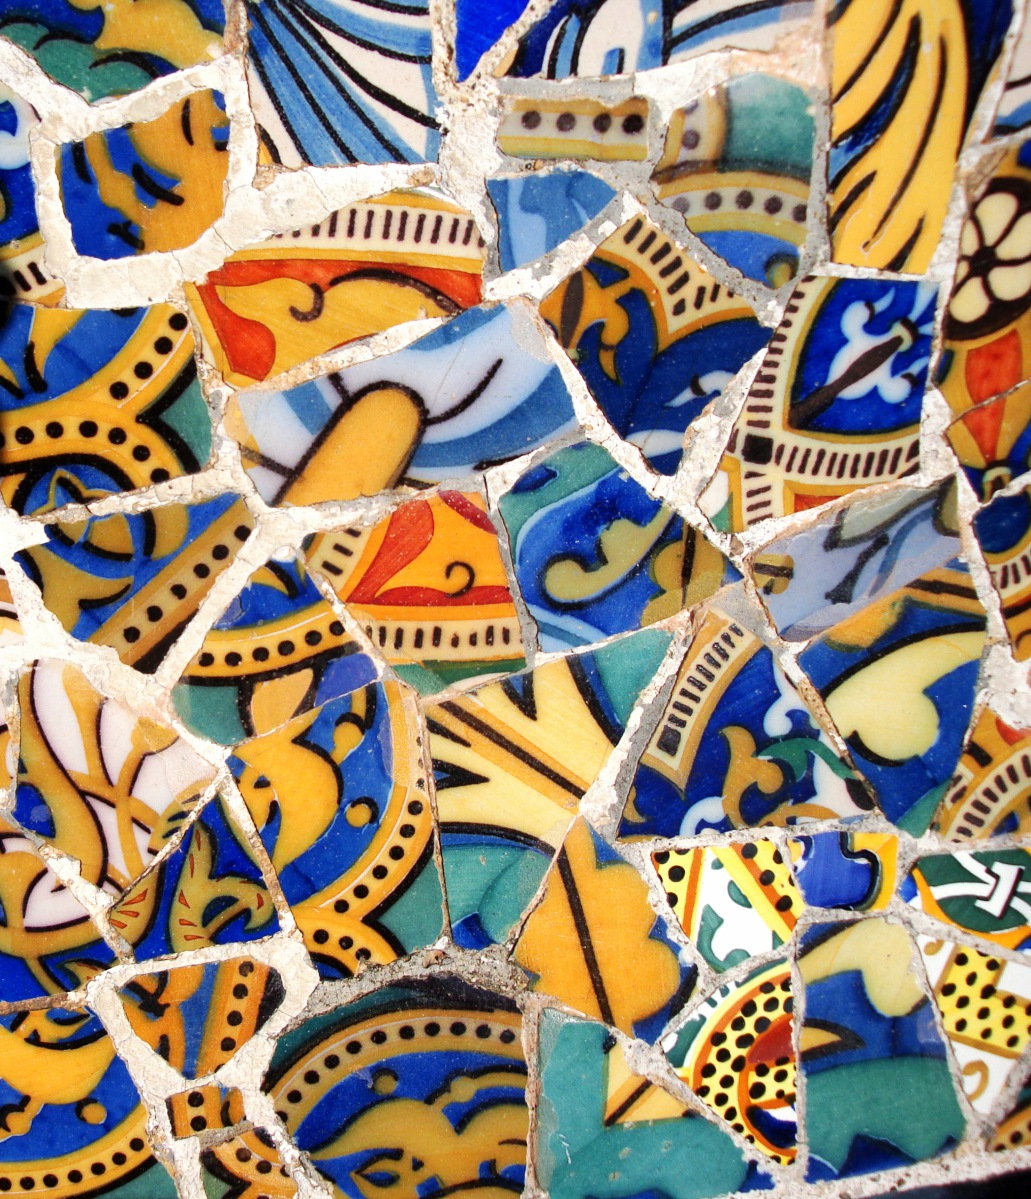 A city living in color of broken mosaics